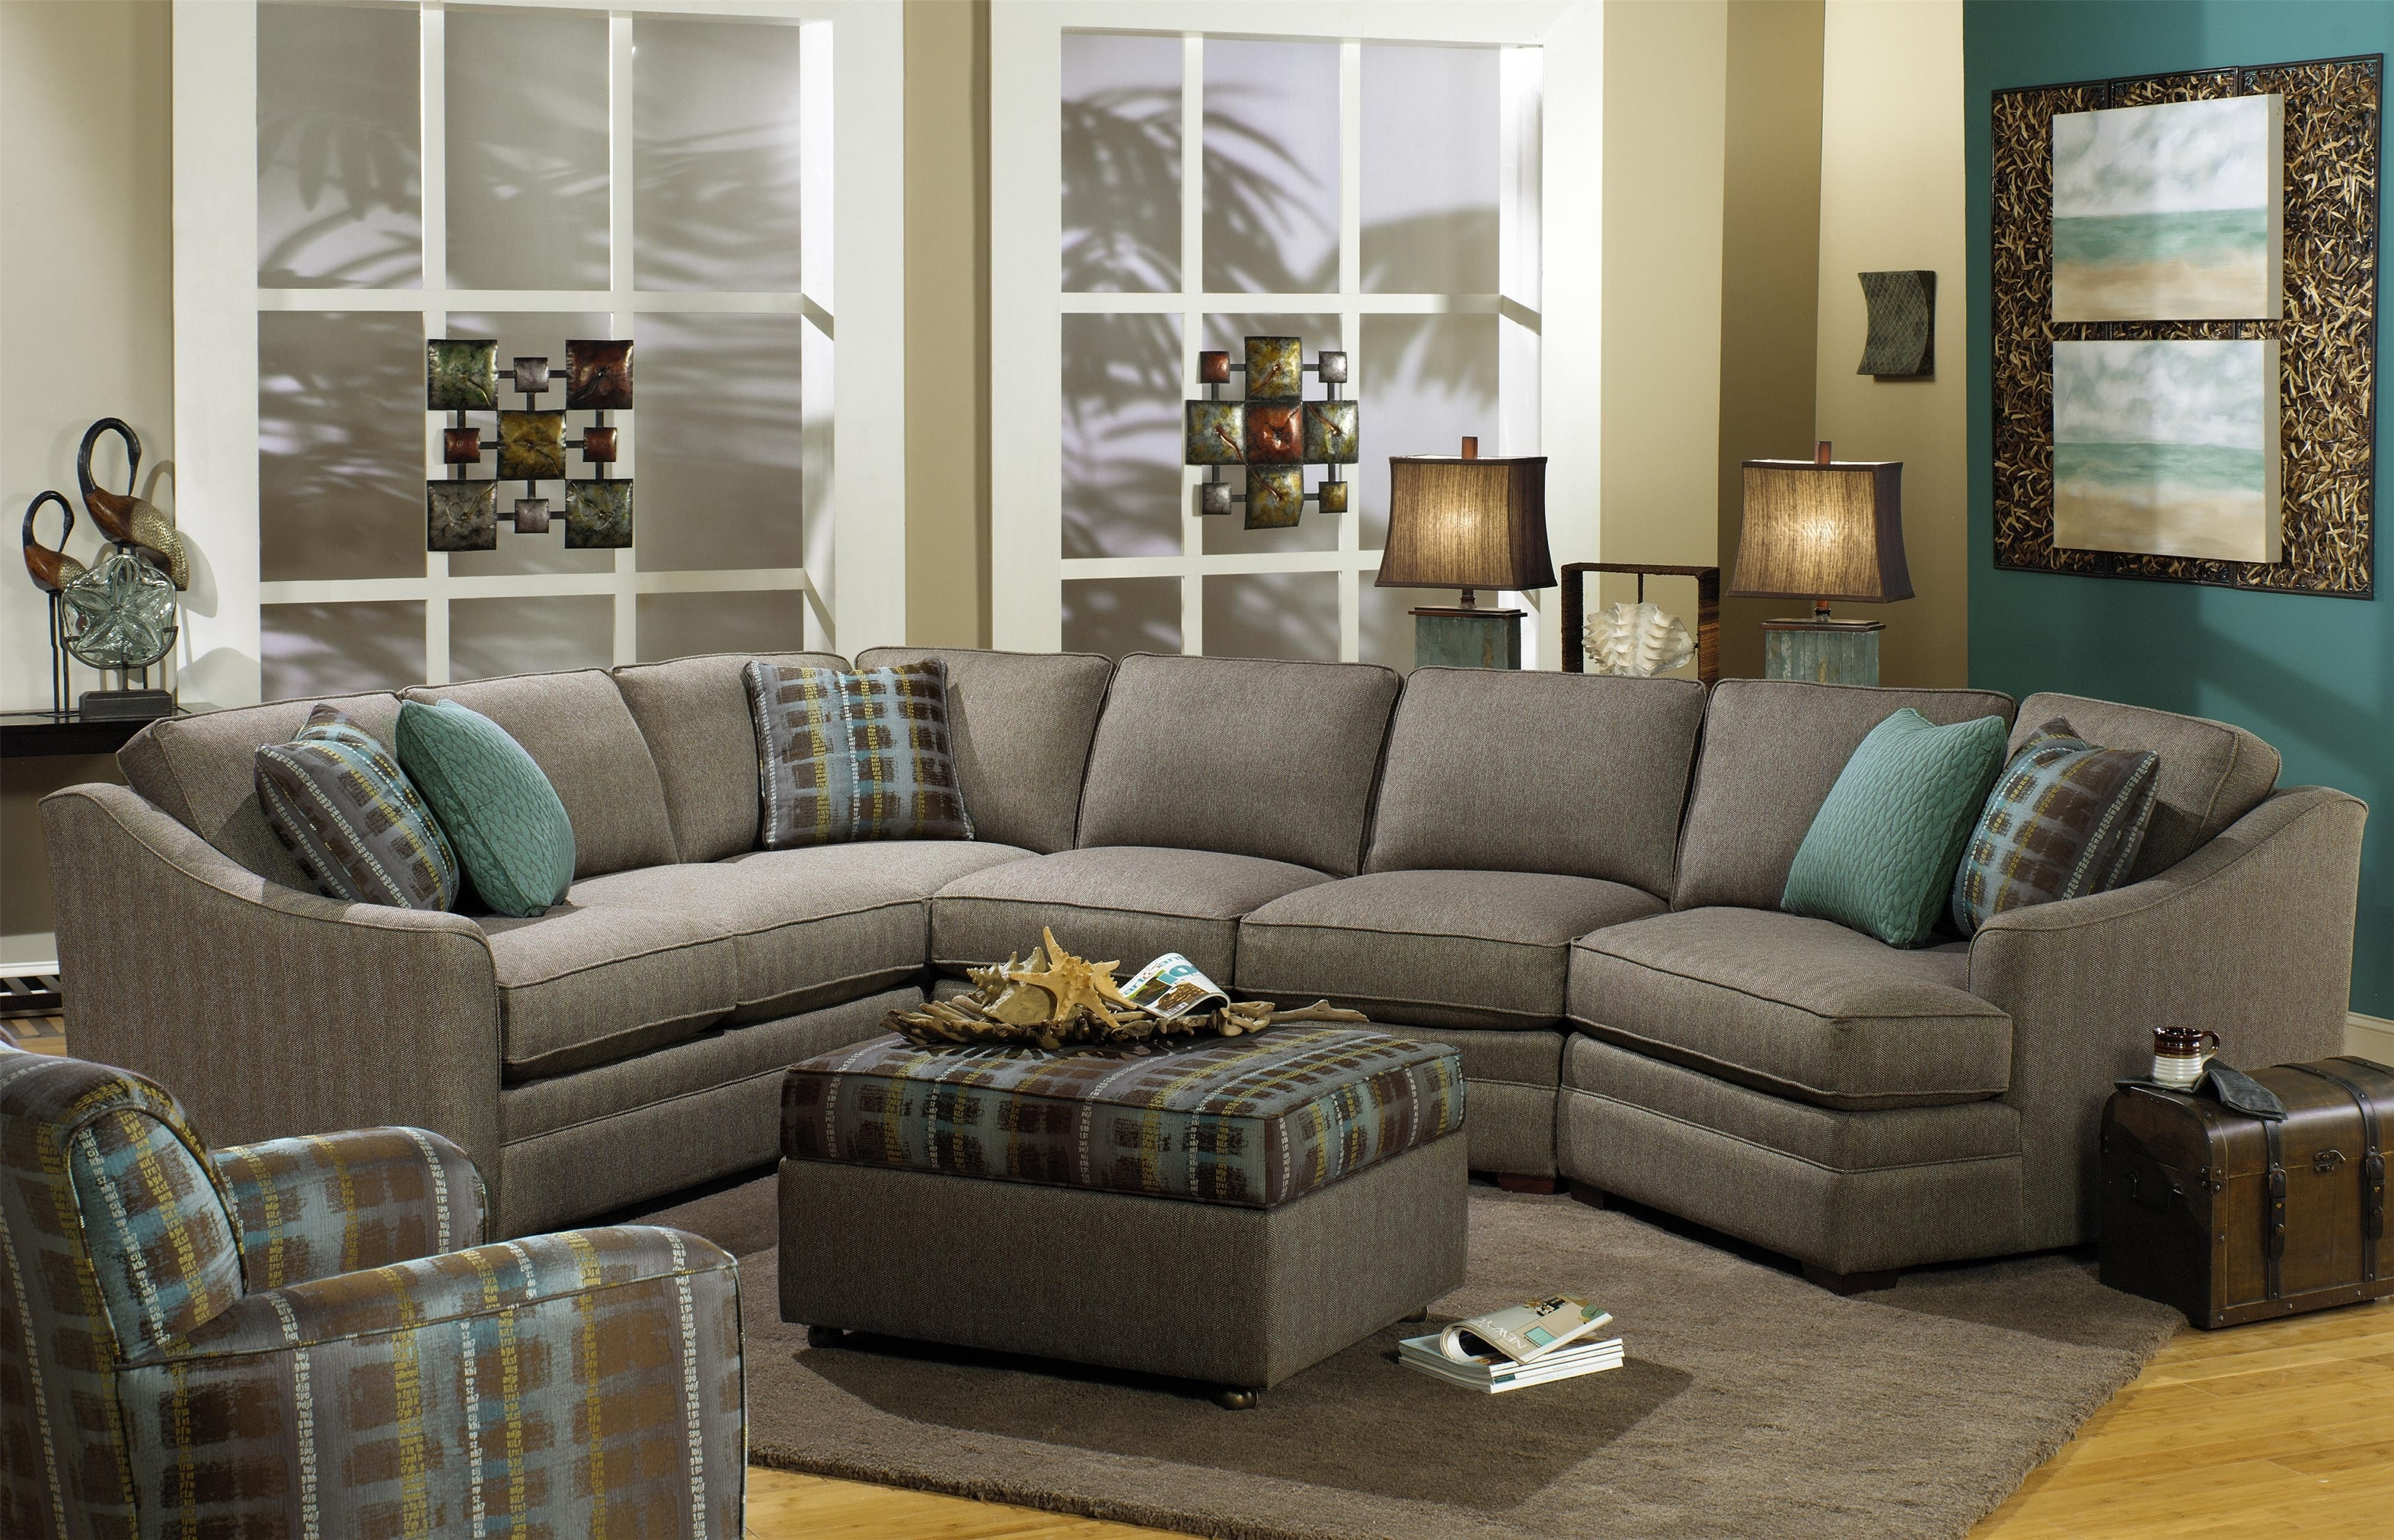 F9 Custom Collection Customizable 3 Piece Sectional With Laf Cuddler In Virginia Sectional Sofas (View 7 of 10)